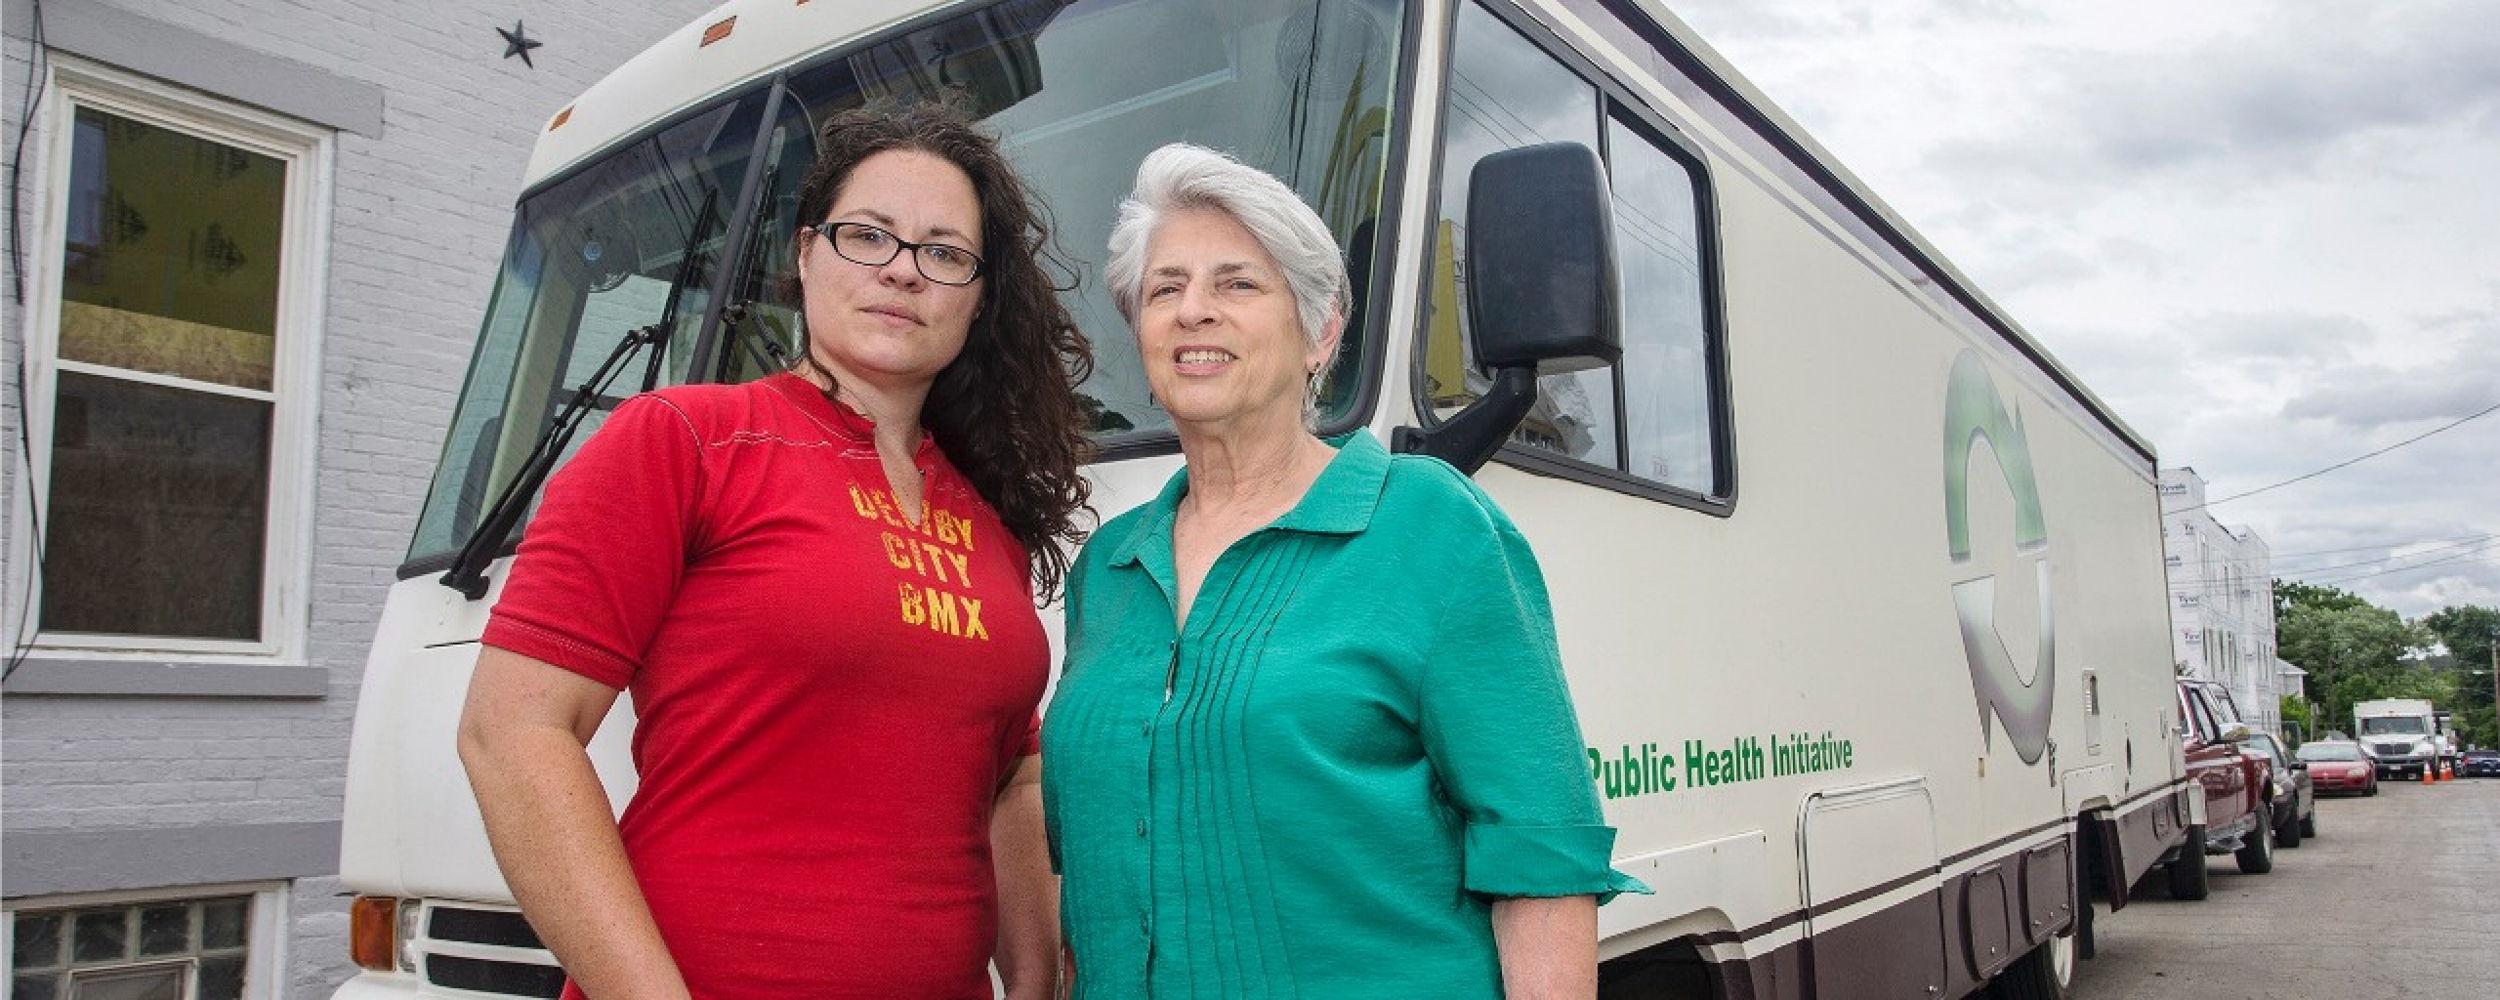 Dr Judith Feinberg and Libby Harrison stand in front of the Cincinnati Needle Exchange RV.